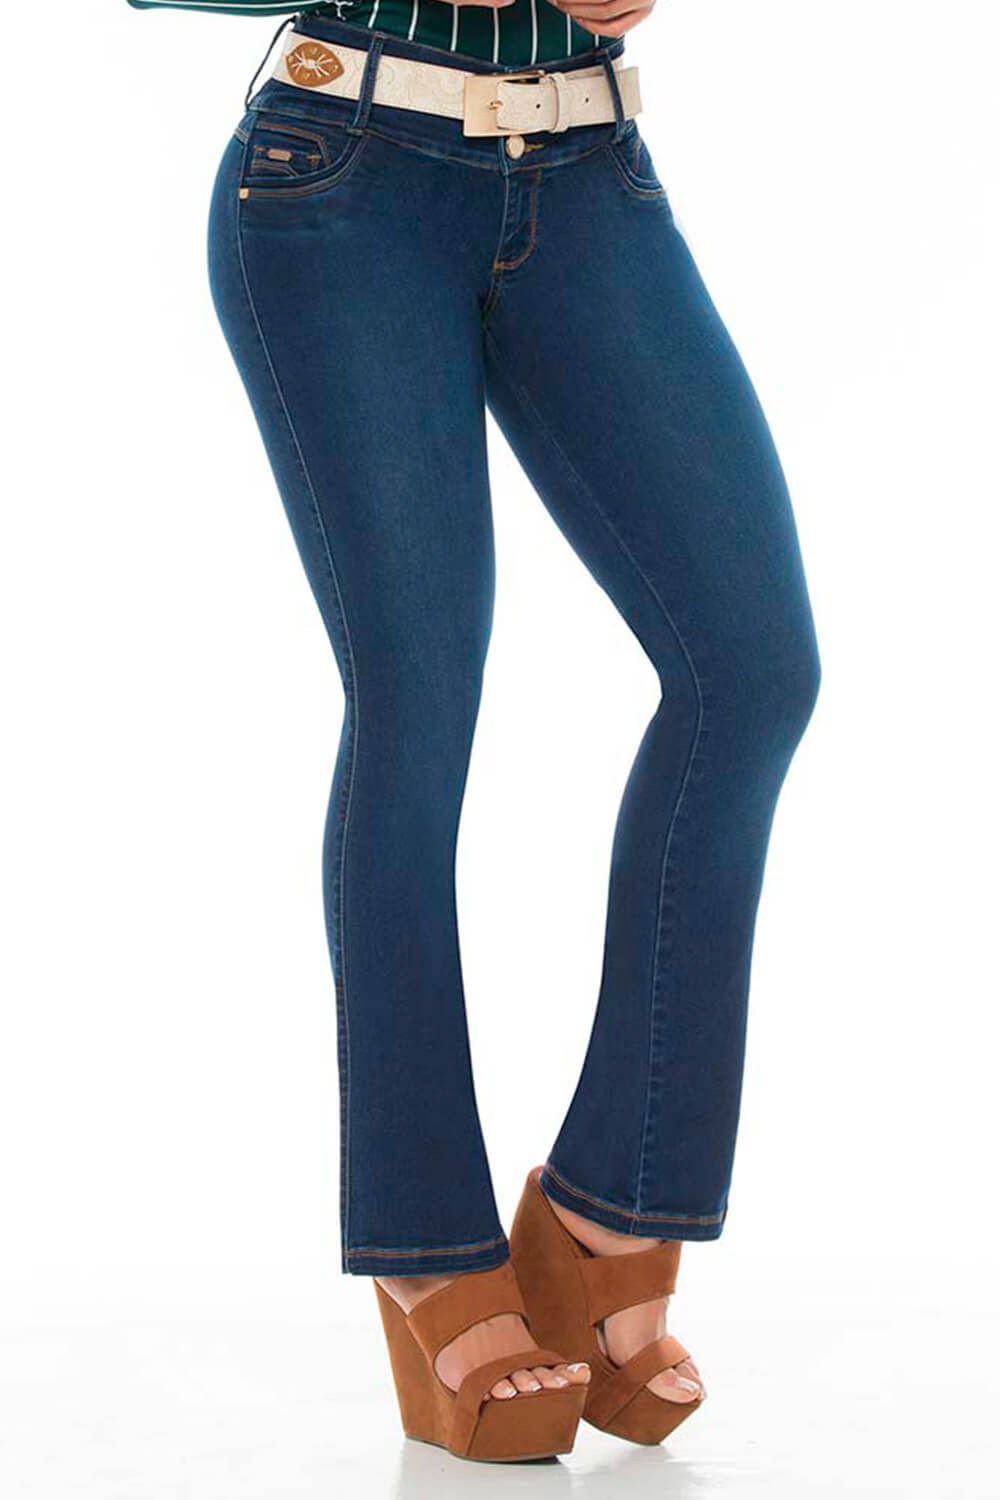 Jean Macondo M3821 - Colombia Jeans - Jeans Colombianos ...